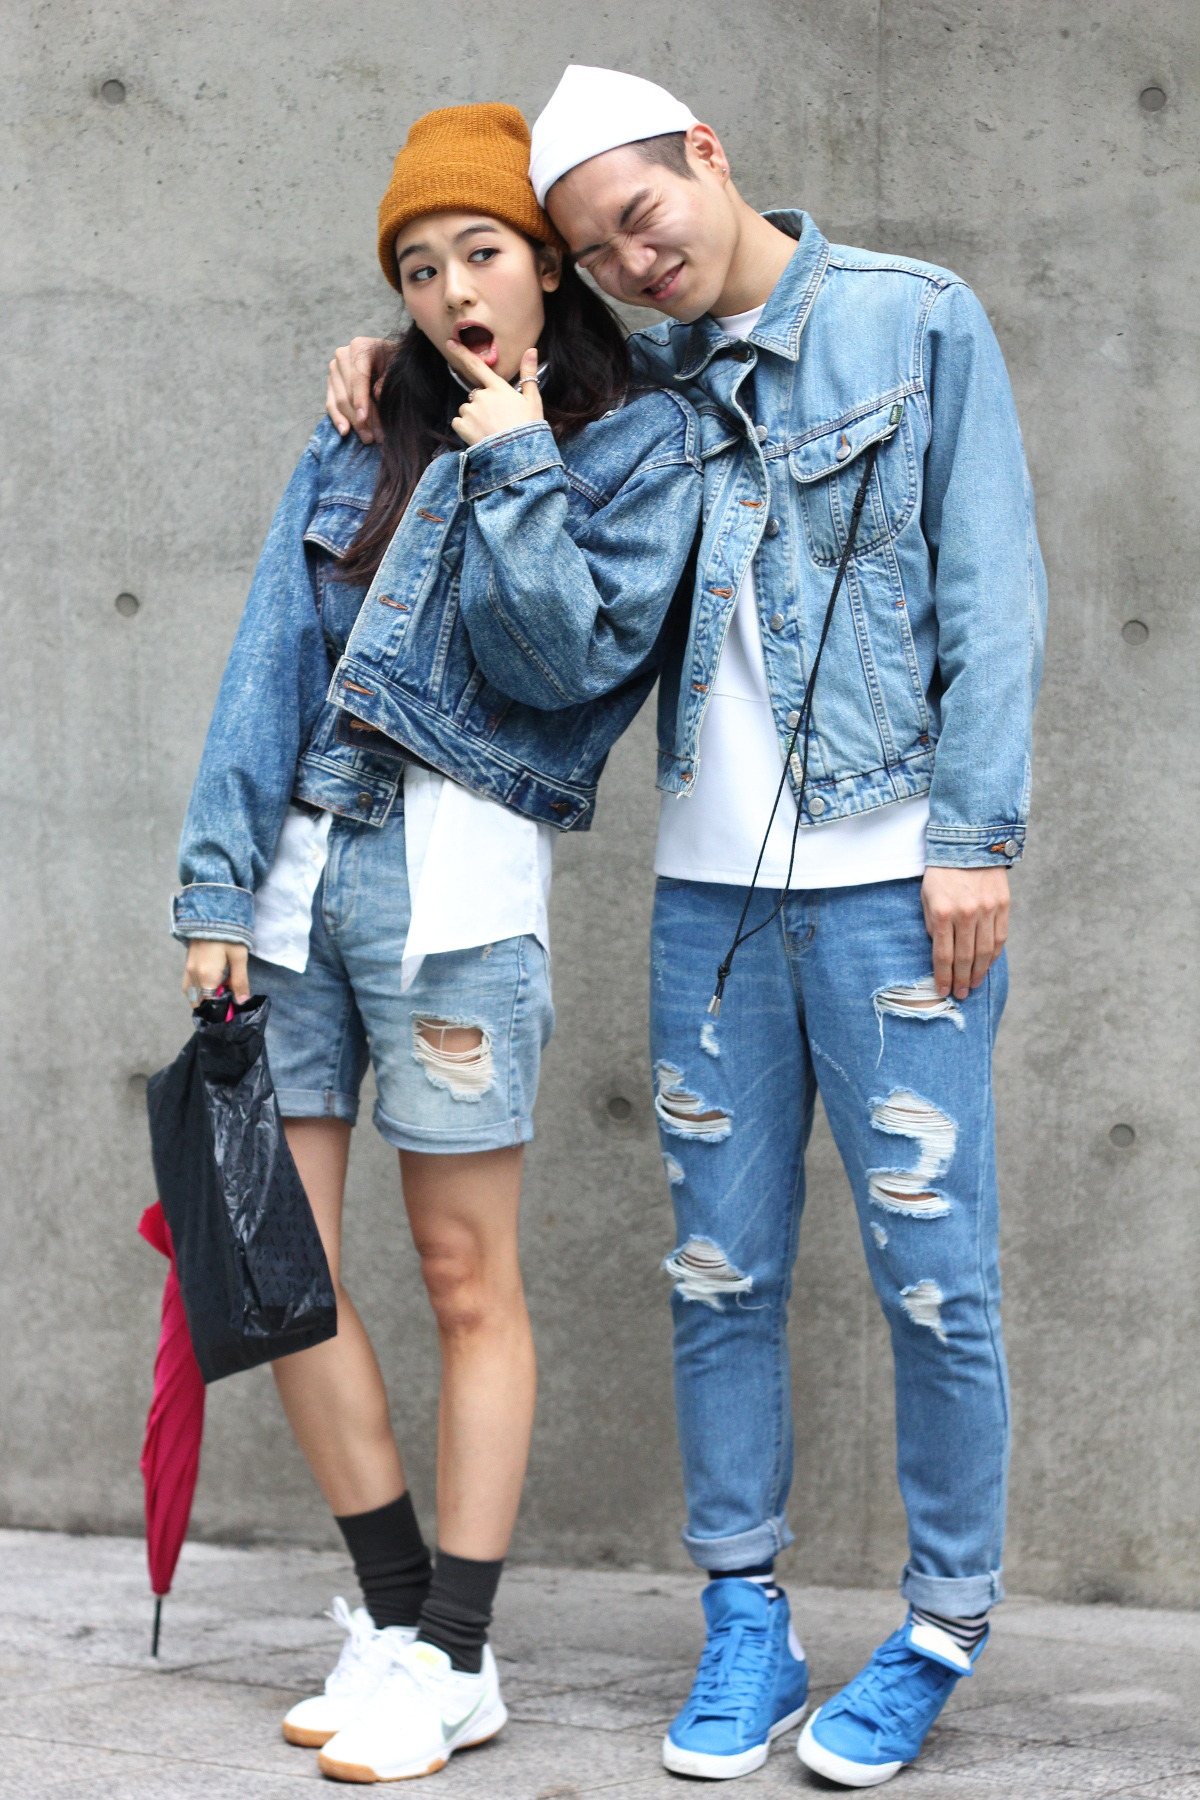 couple look outfit korean style denim on denim model off duty fashion casual